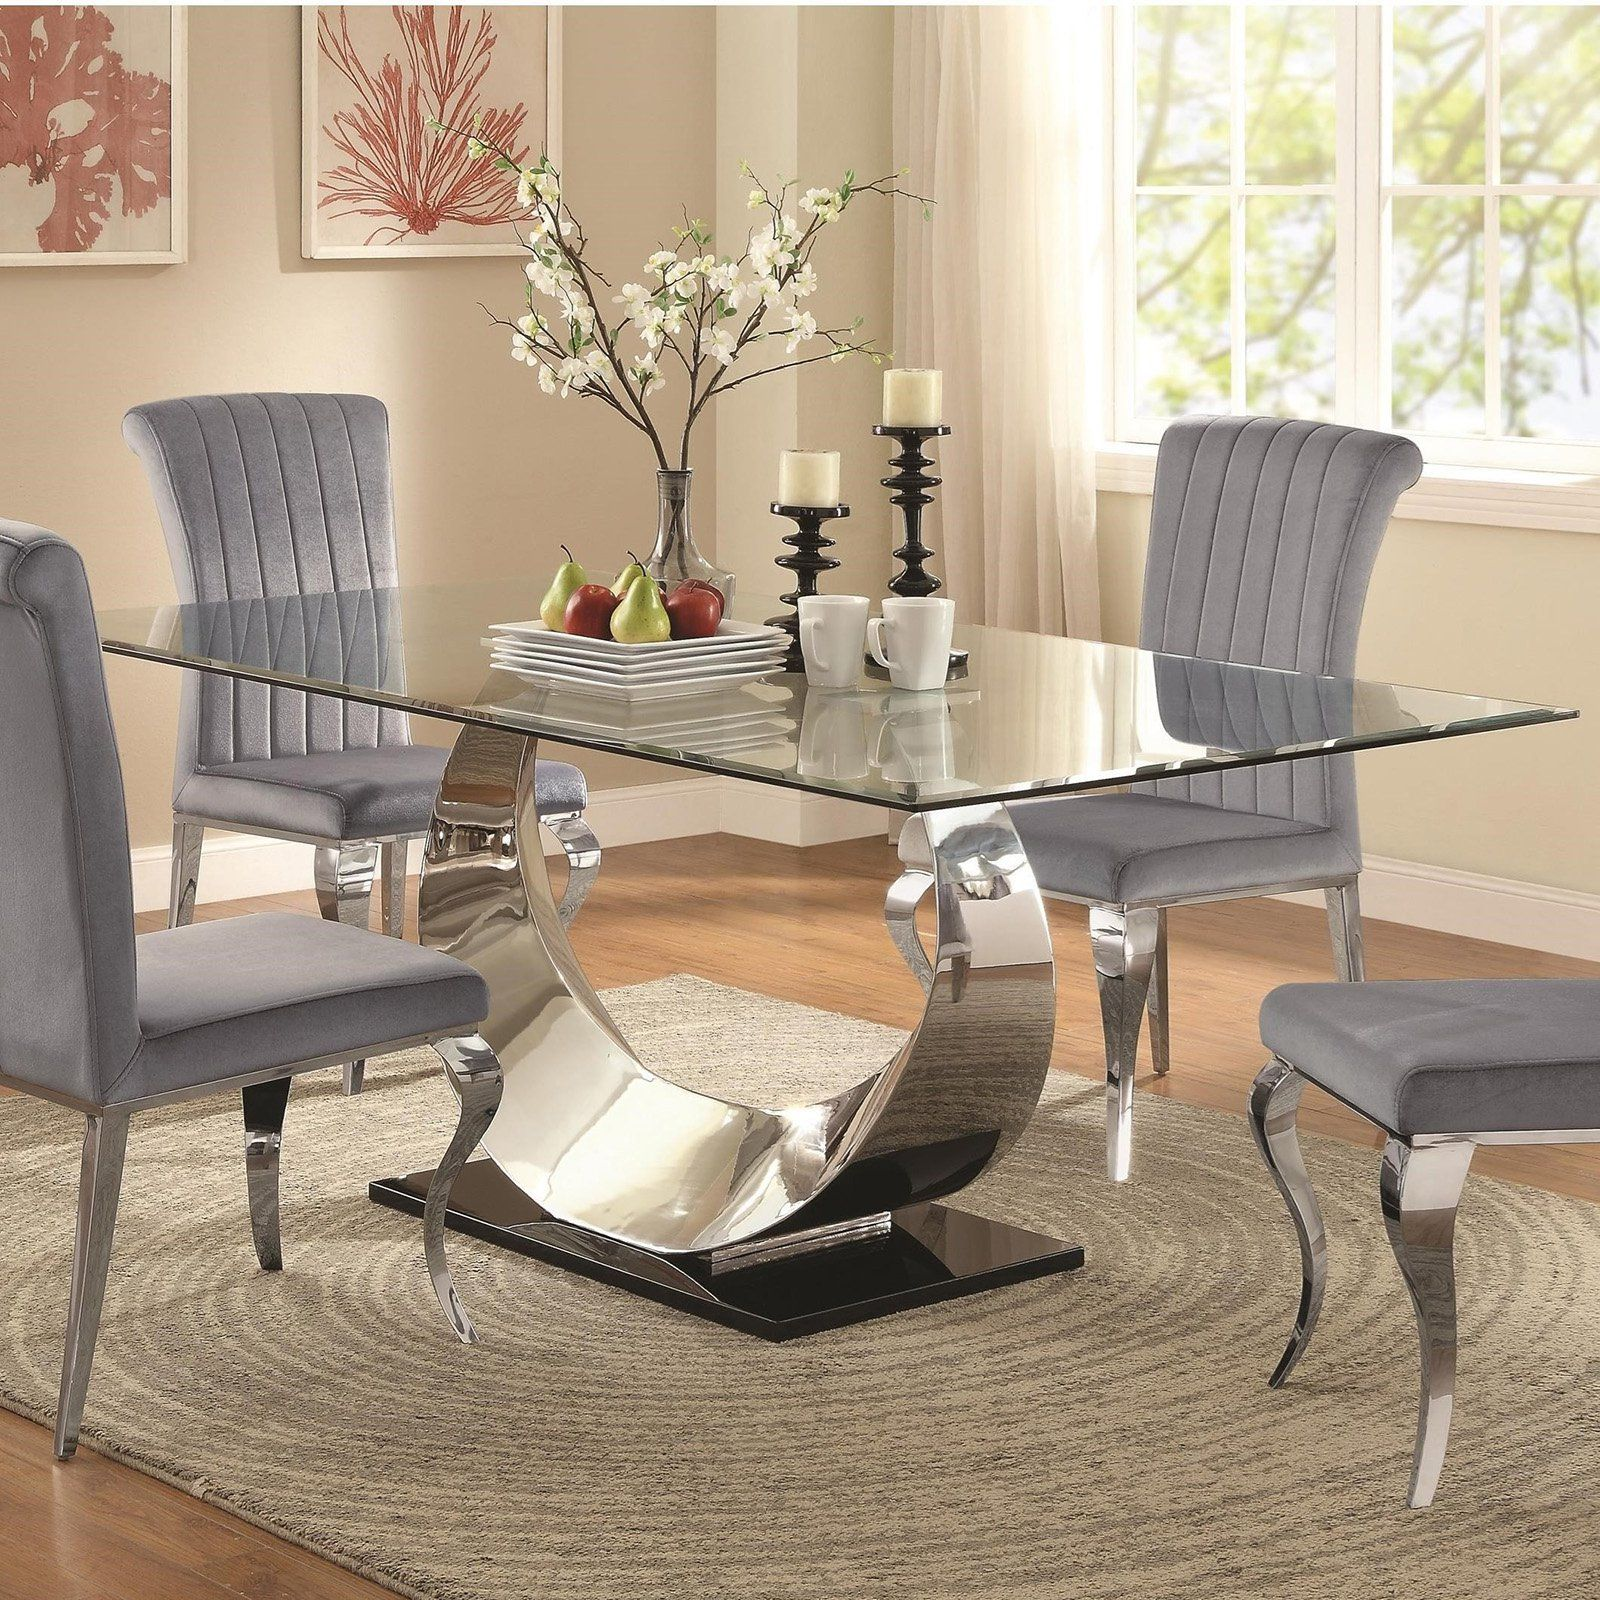 Coaster Furniture Manessier Dining Table - 107051 | Products ...